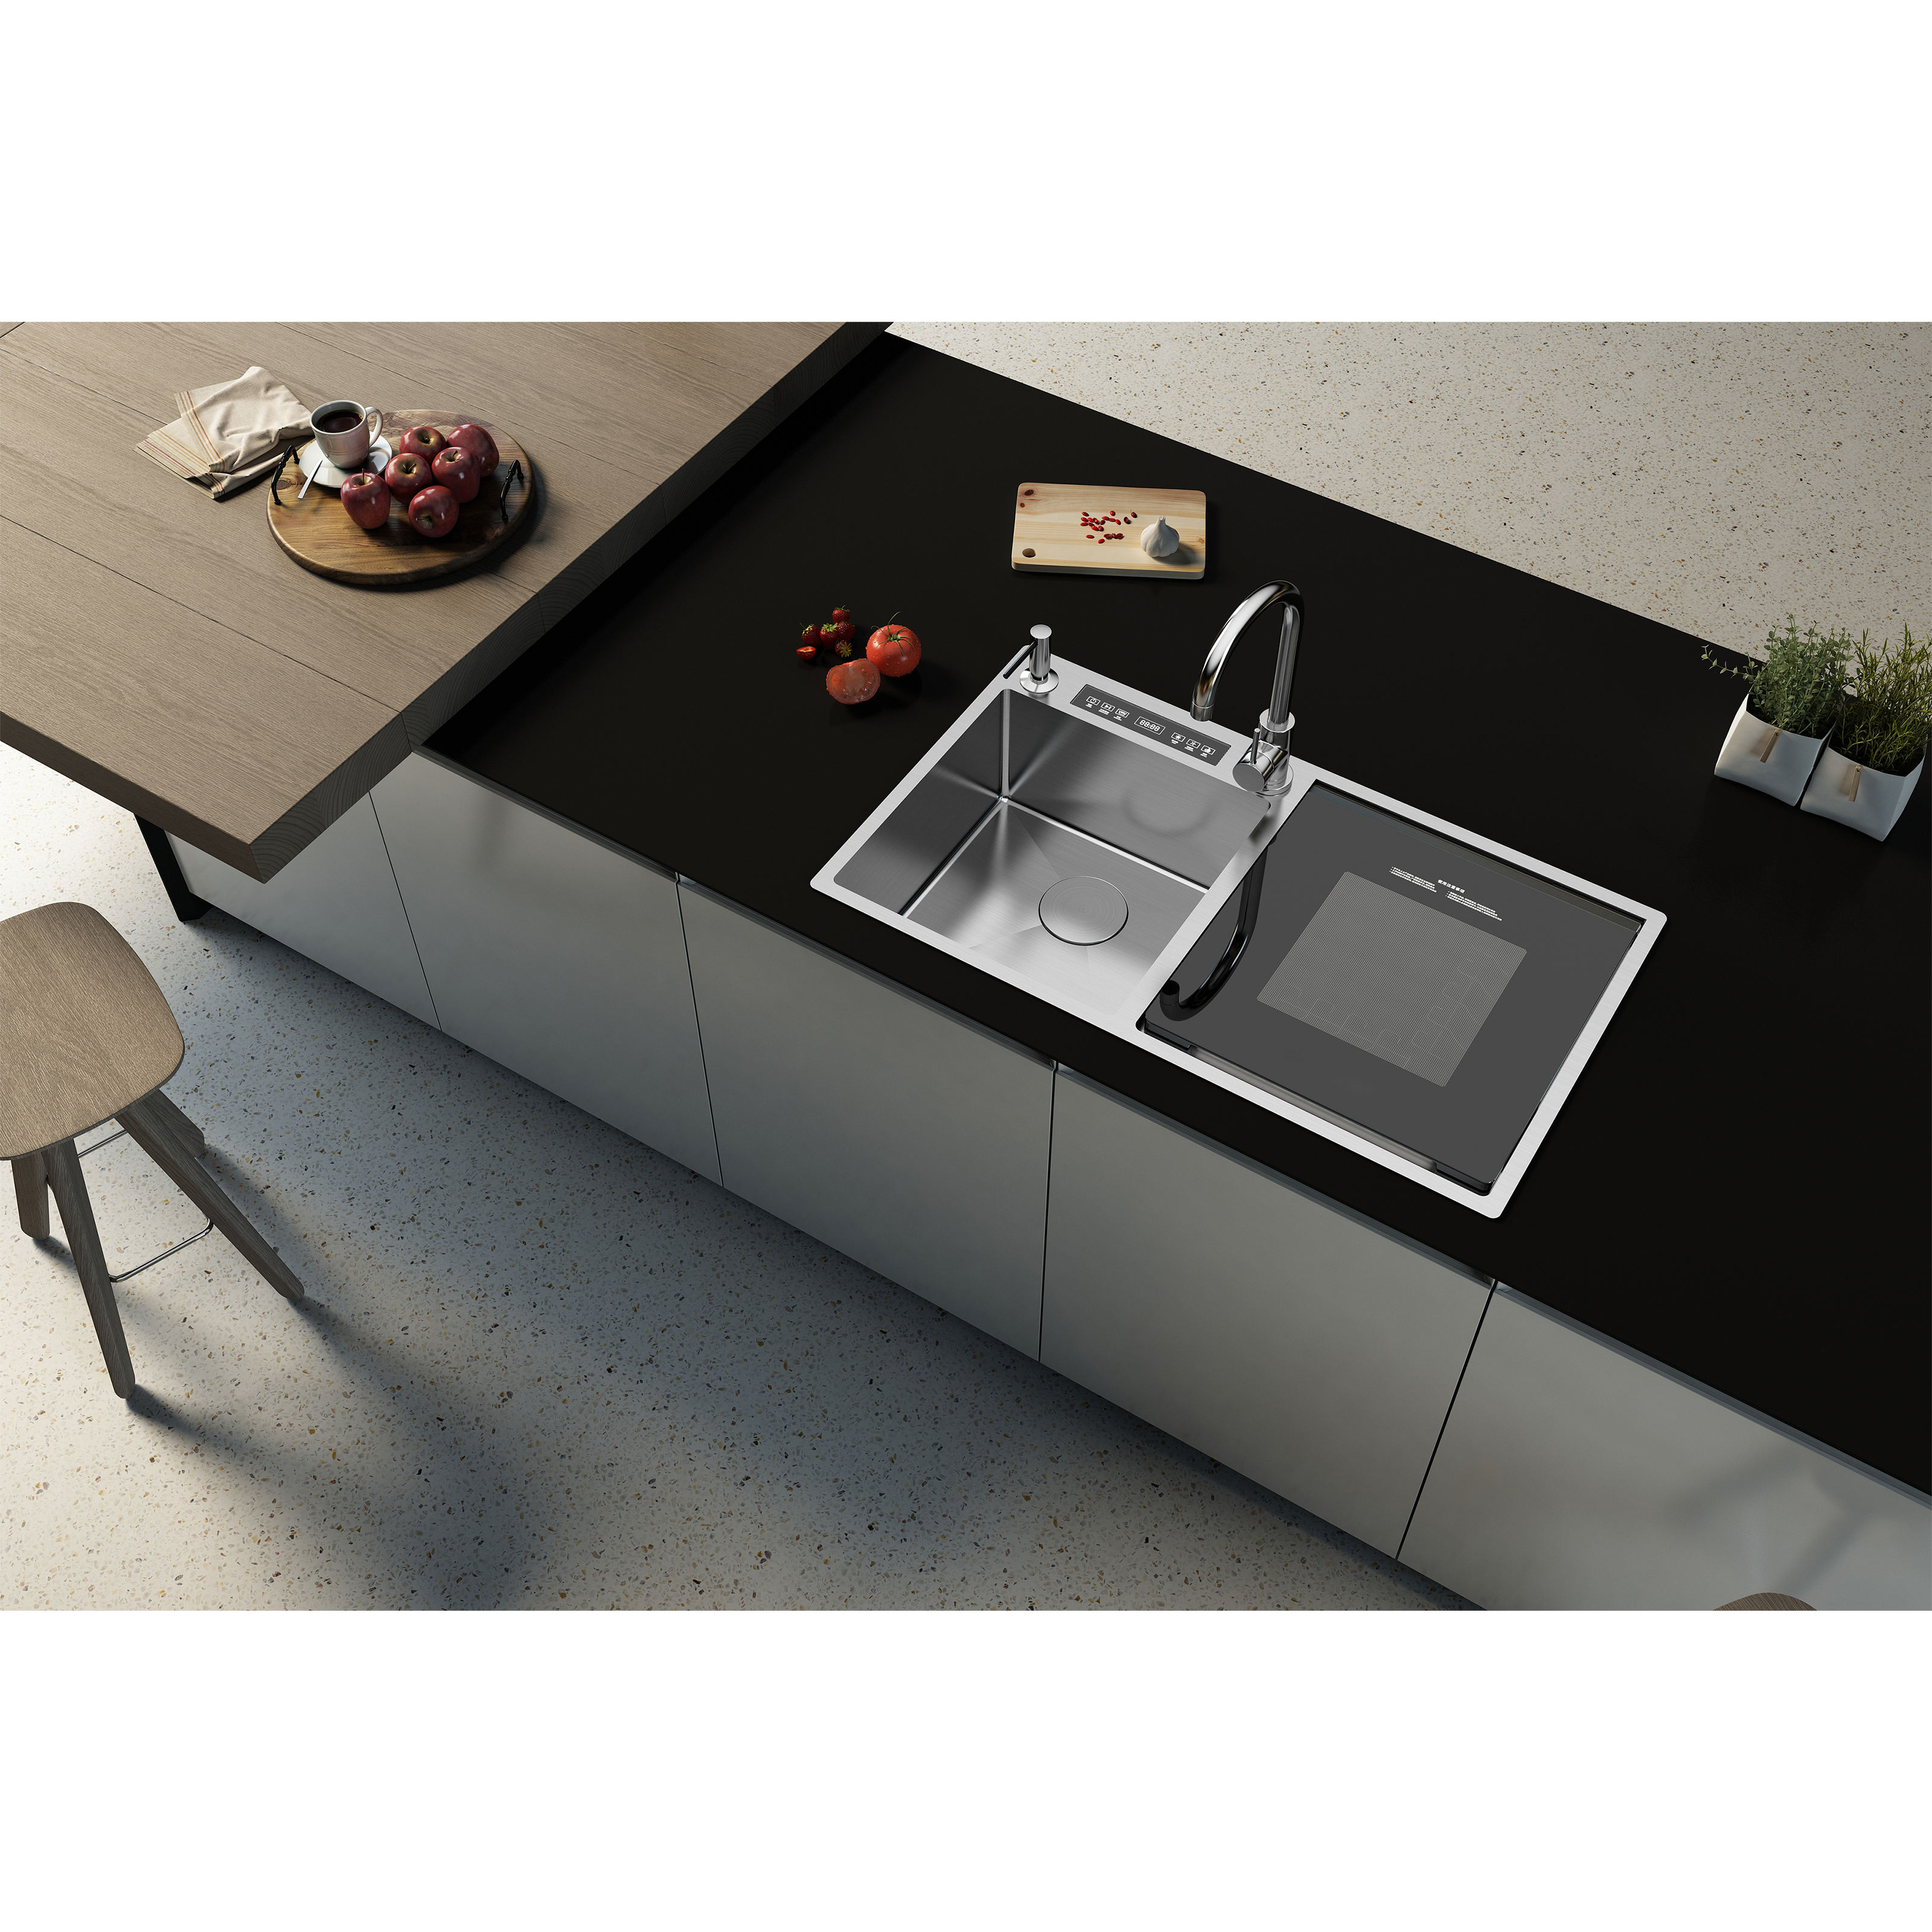 Excellent quality deep 304 stainless steel automatic washing sink